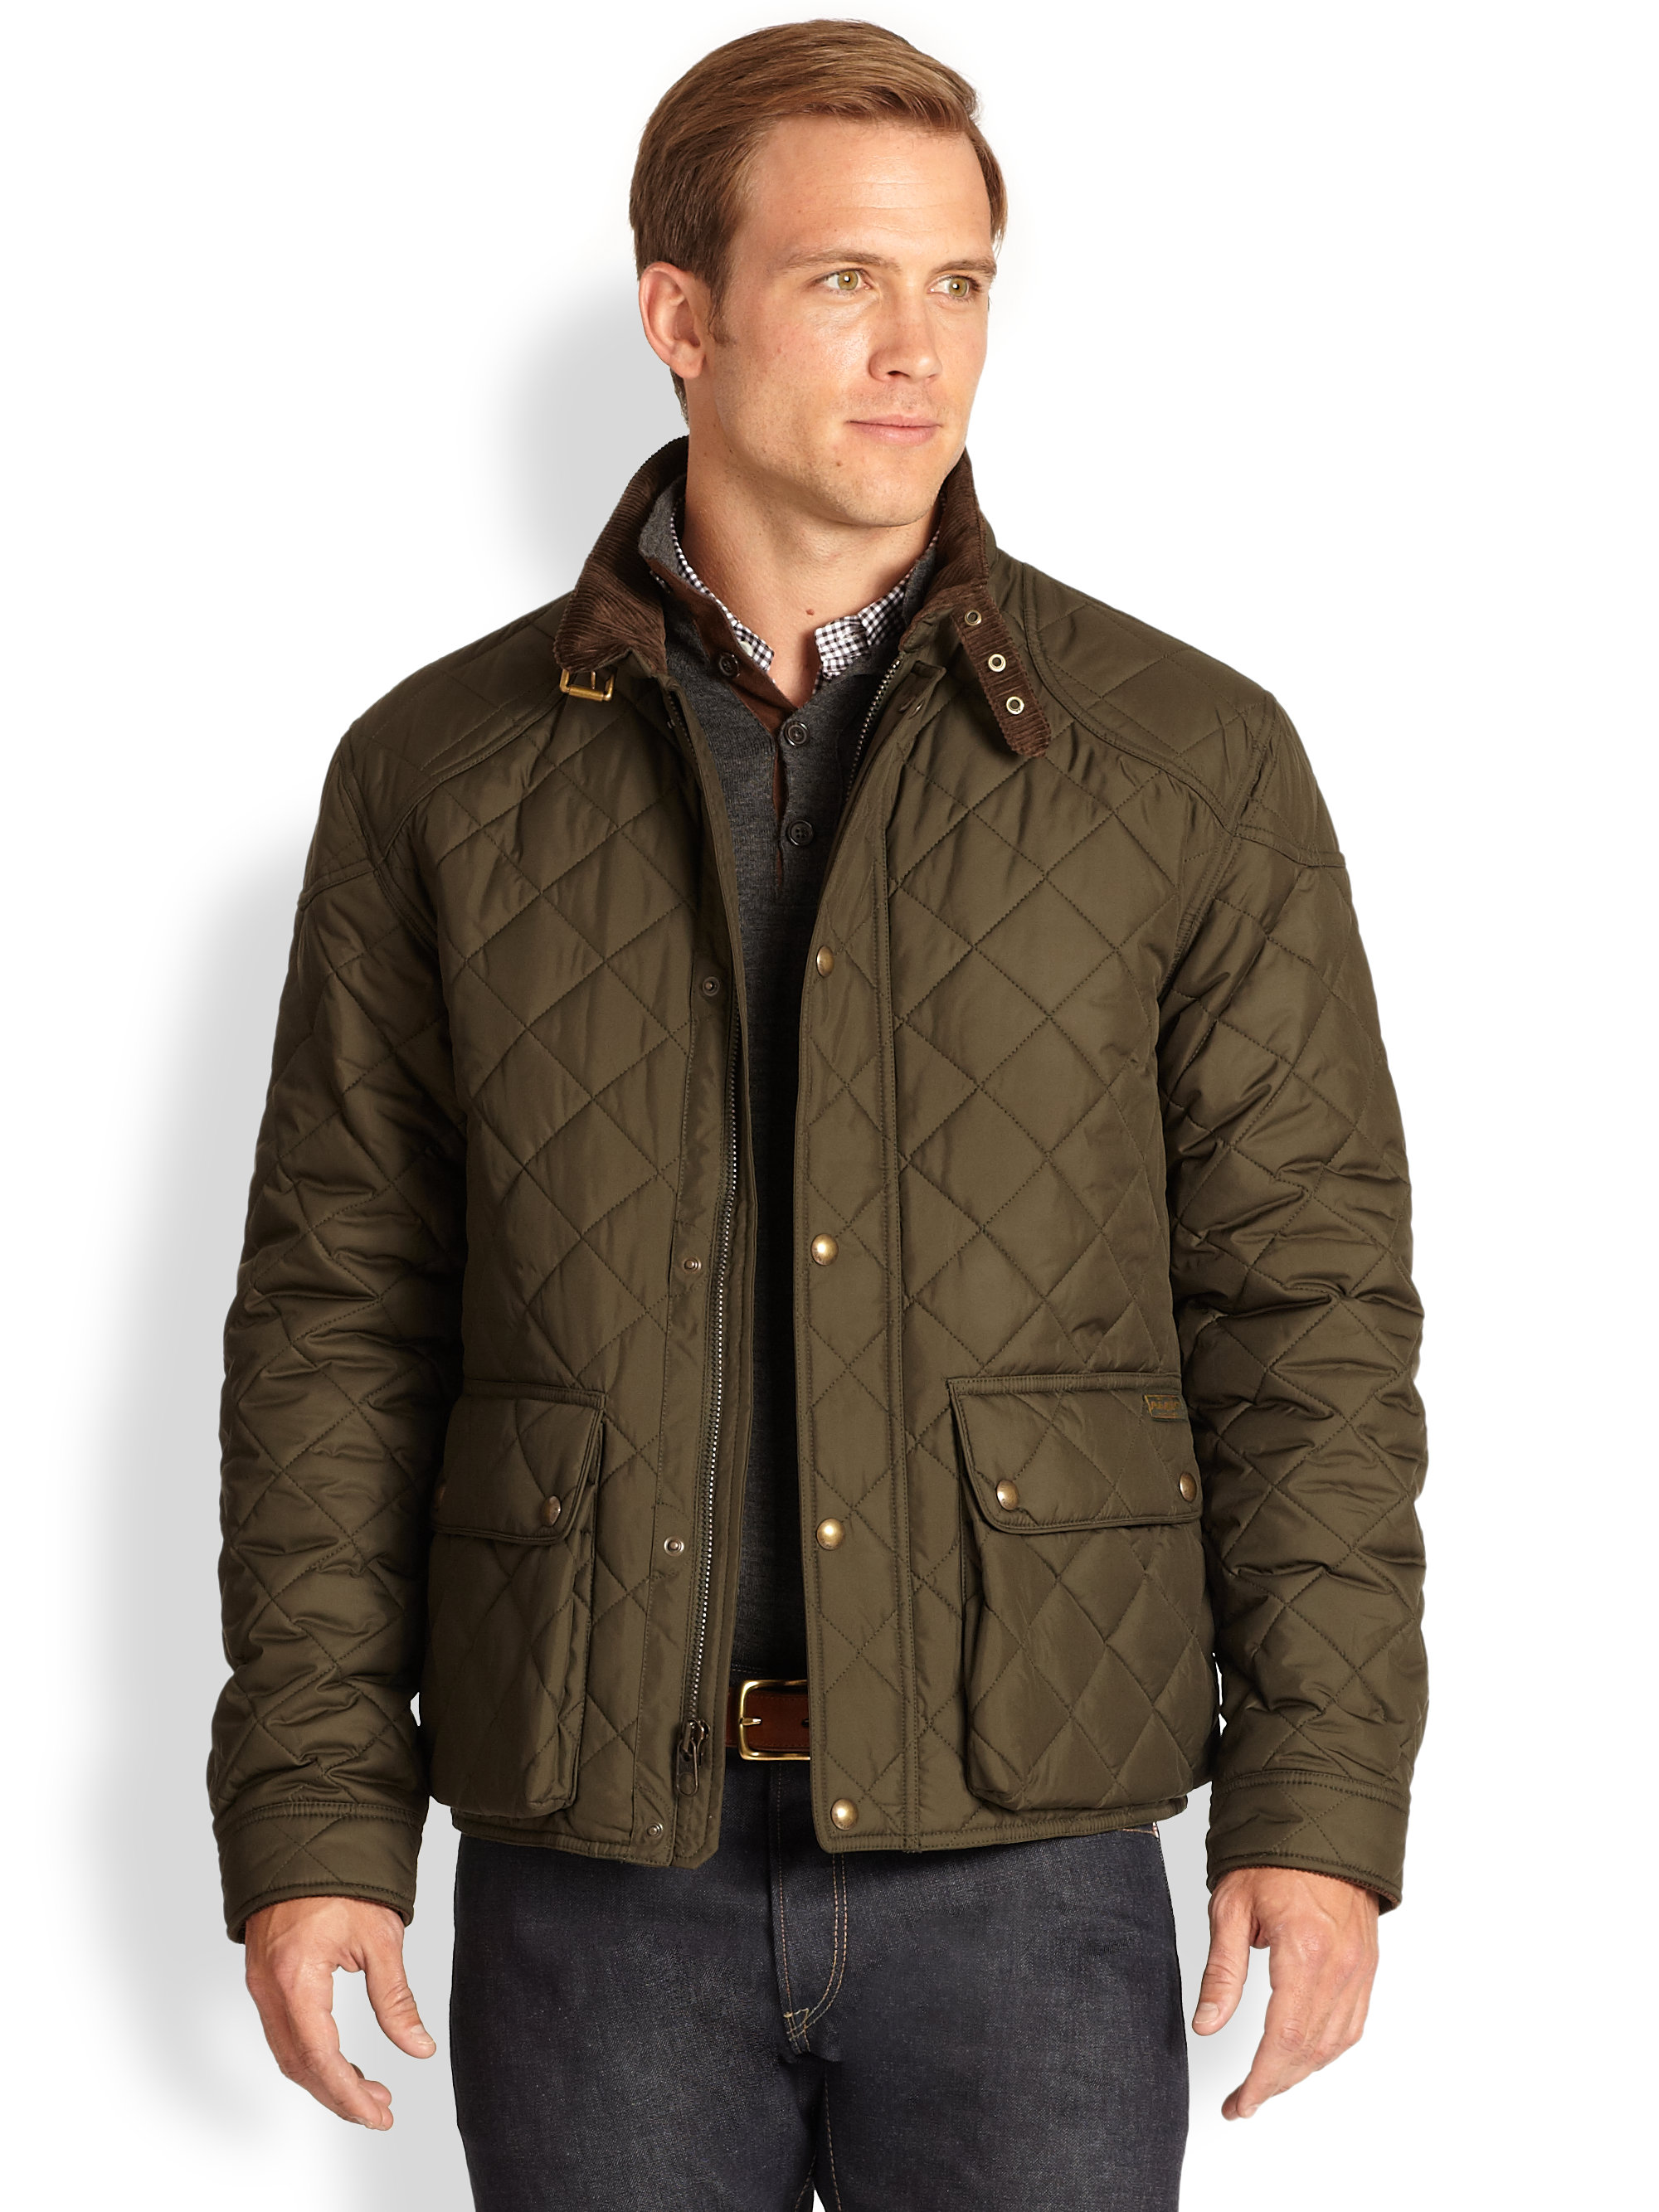 Polo ralph lauren Cadwell Quilted Bomber Jacket in Green for Men